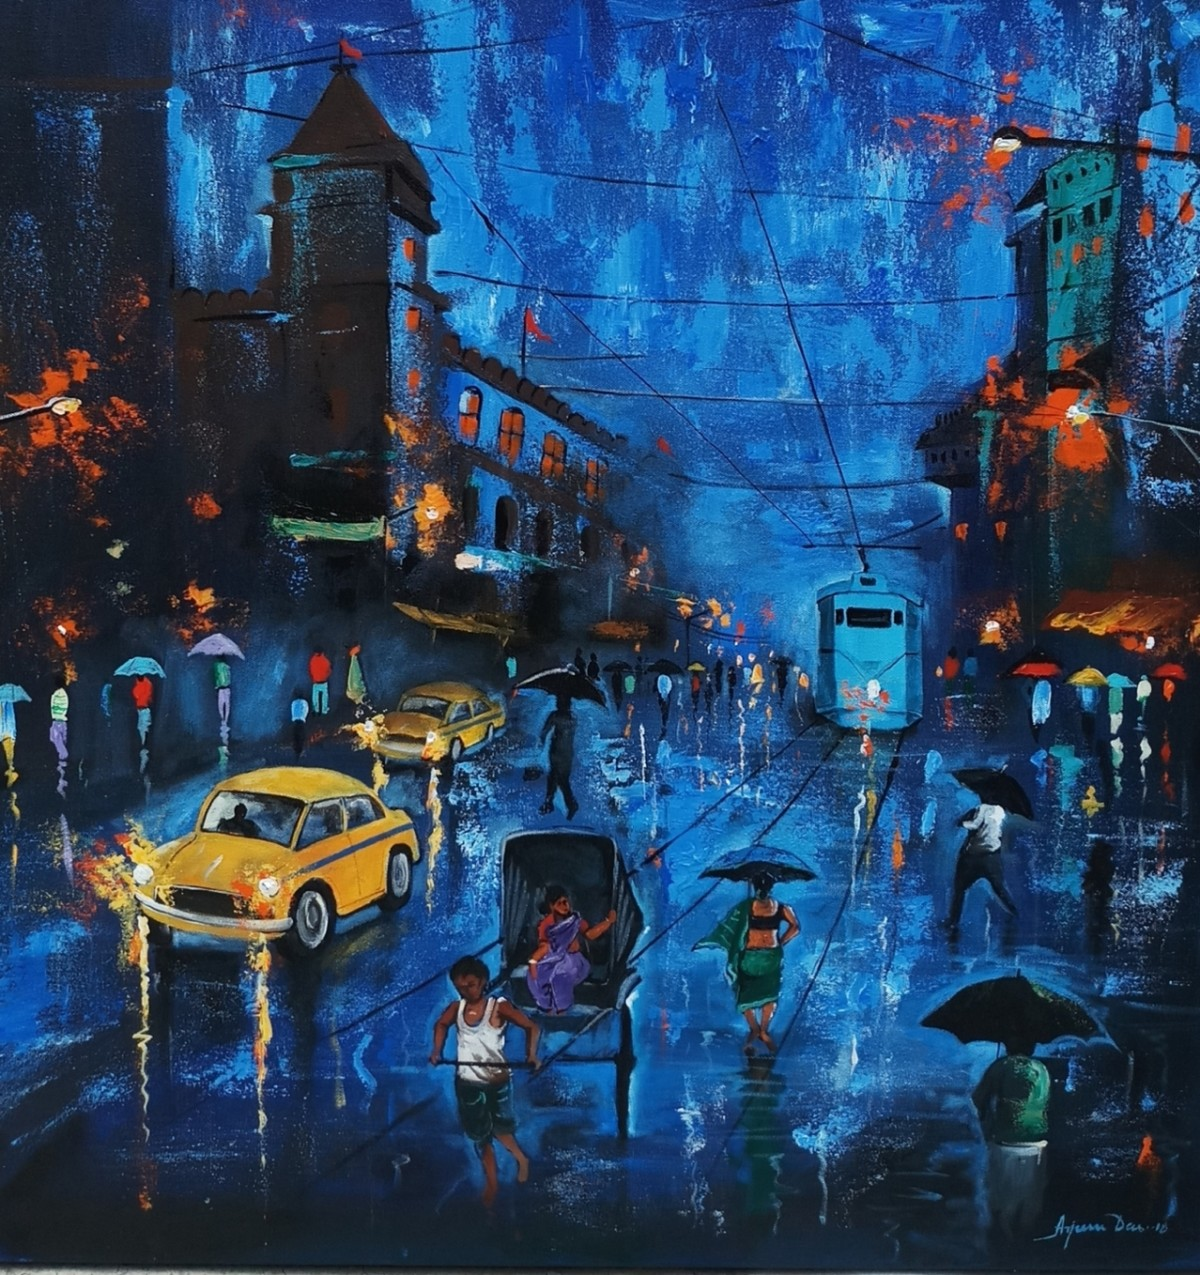 Blue sky Rainy Day by Arjun das, Expressionism Painting, Acrylic on Canvas, Blue color